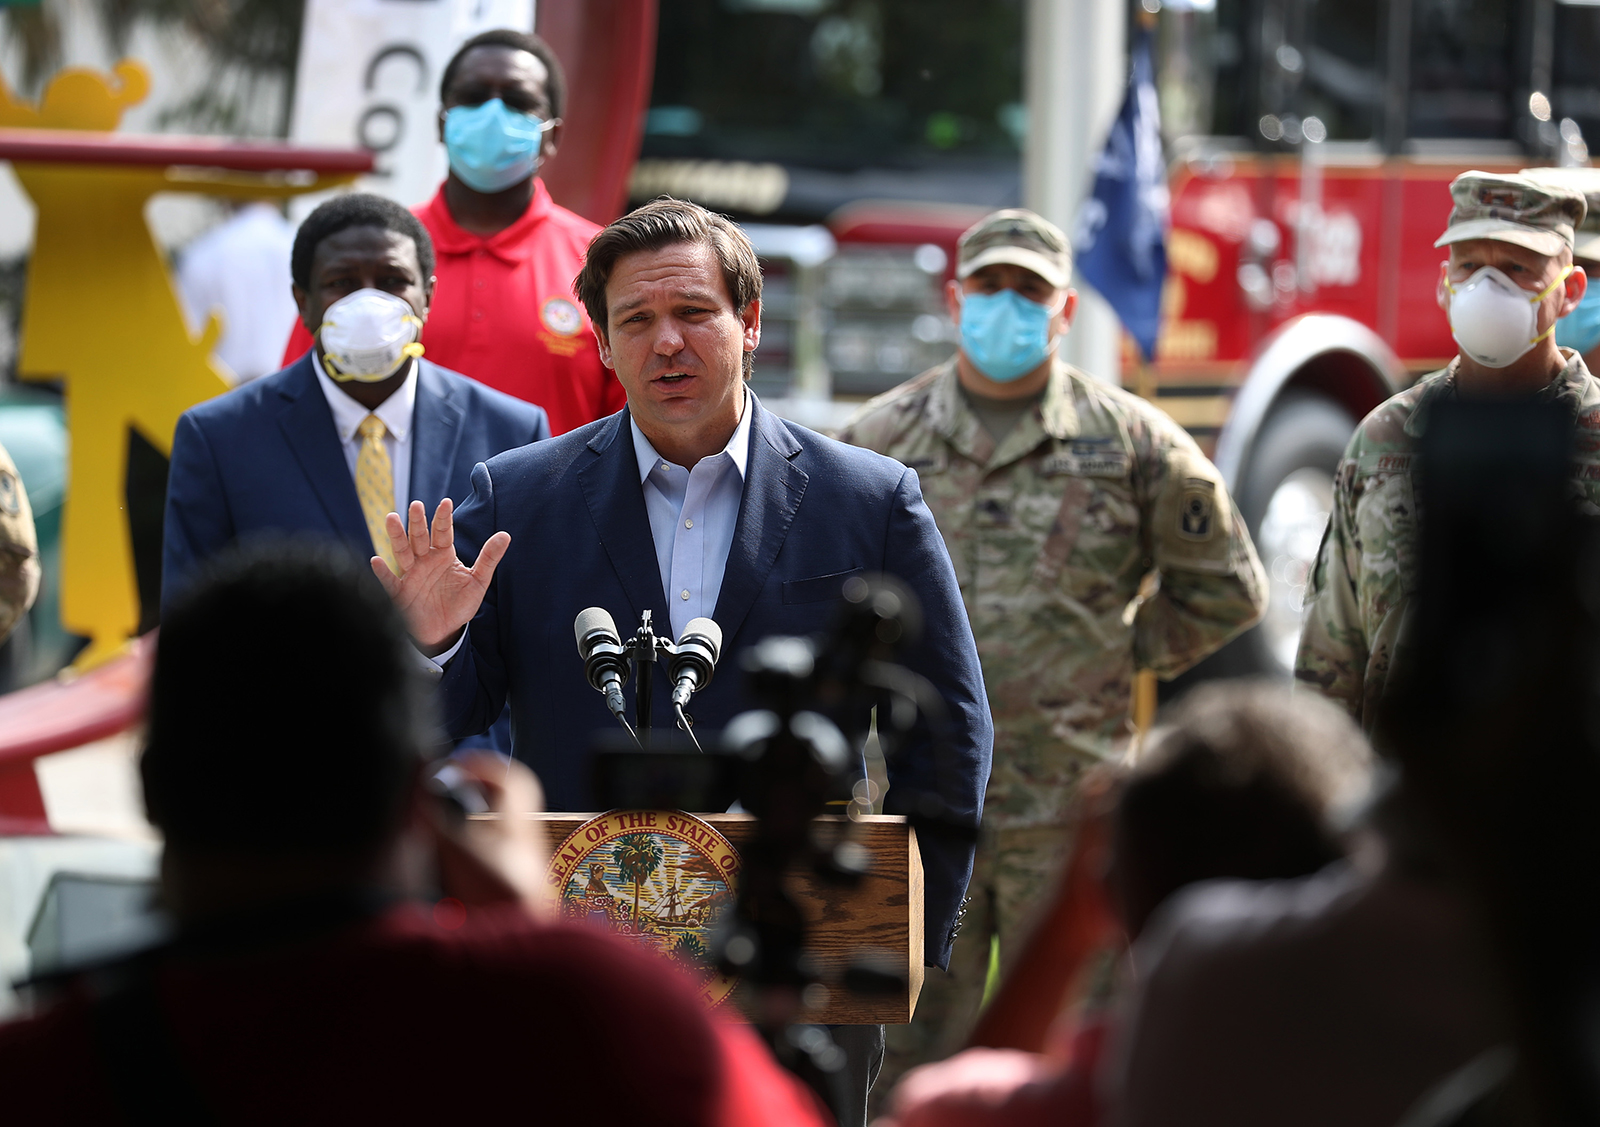 Florida Gov. Ron DeSantis gives updates about the state's response to the coronavirus pandemic during a press conference on Friday, April 17, in Fort Lauderdale.